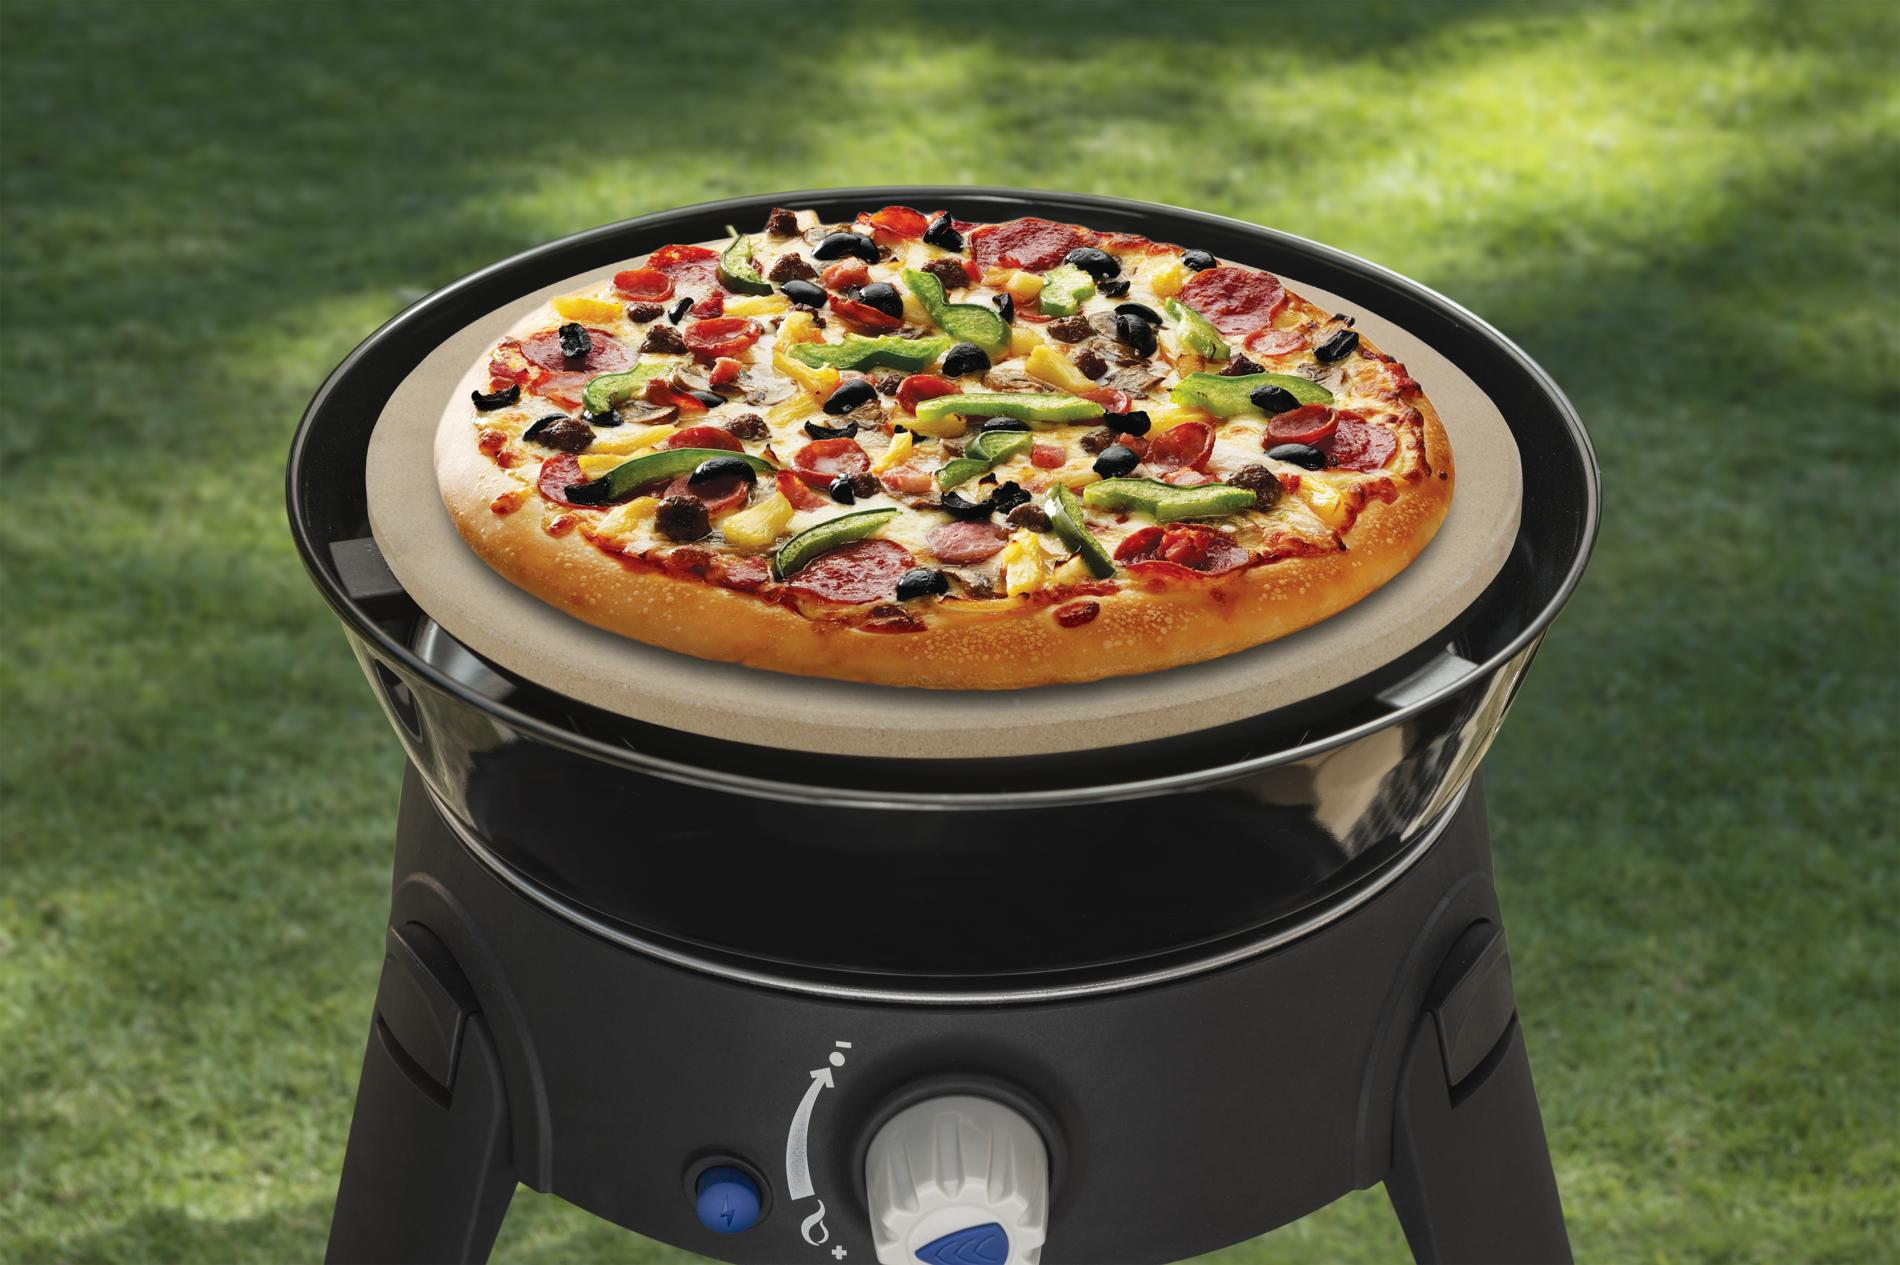 Bake pizza on your BBQ